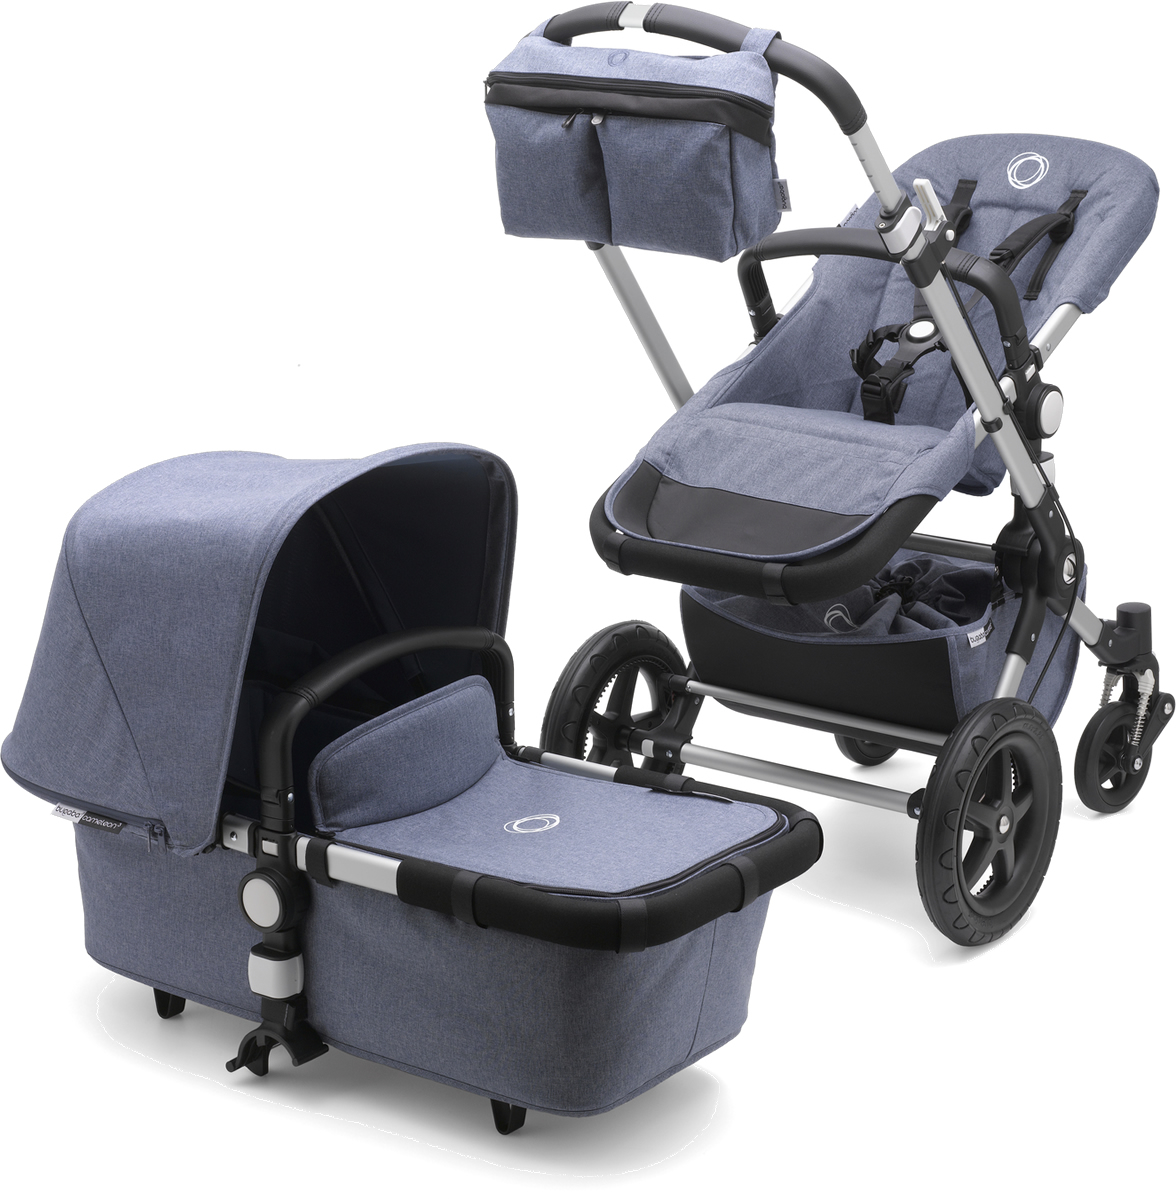 Bugaboo Cameleon 3 Stroller - Fresh Collection - Blue Melange